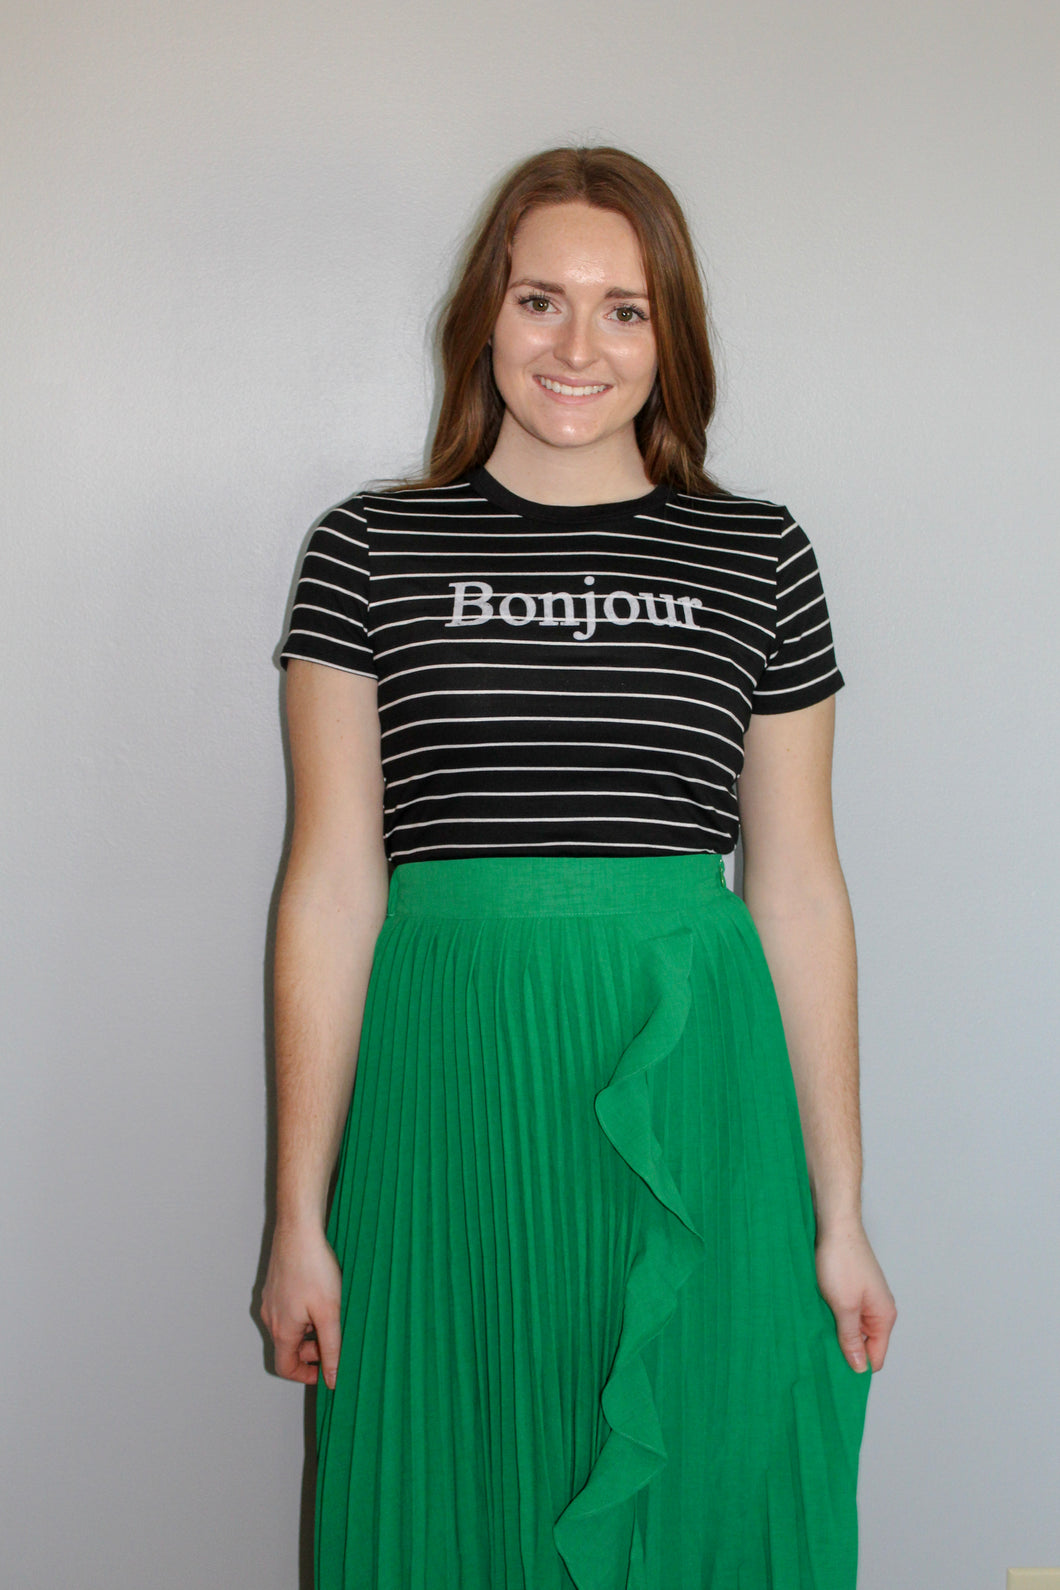 Striped Bonjour Tee - Simply L Boutique